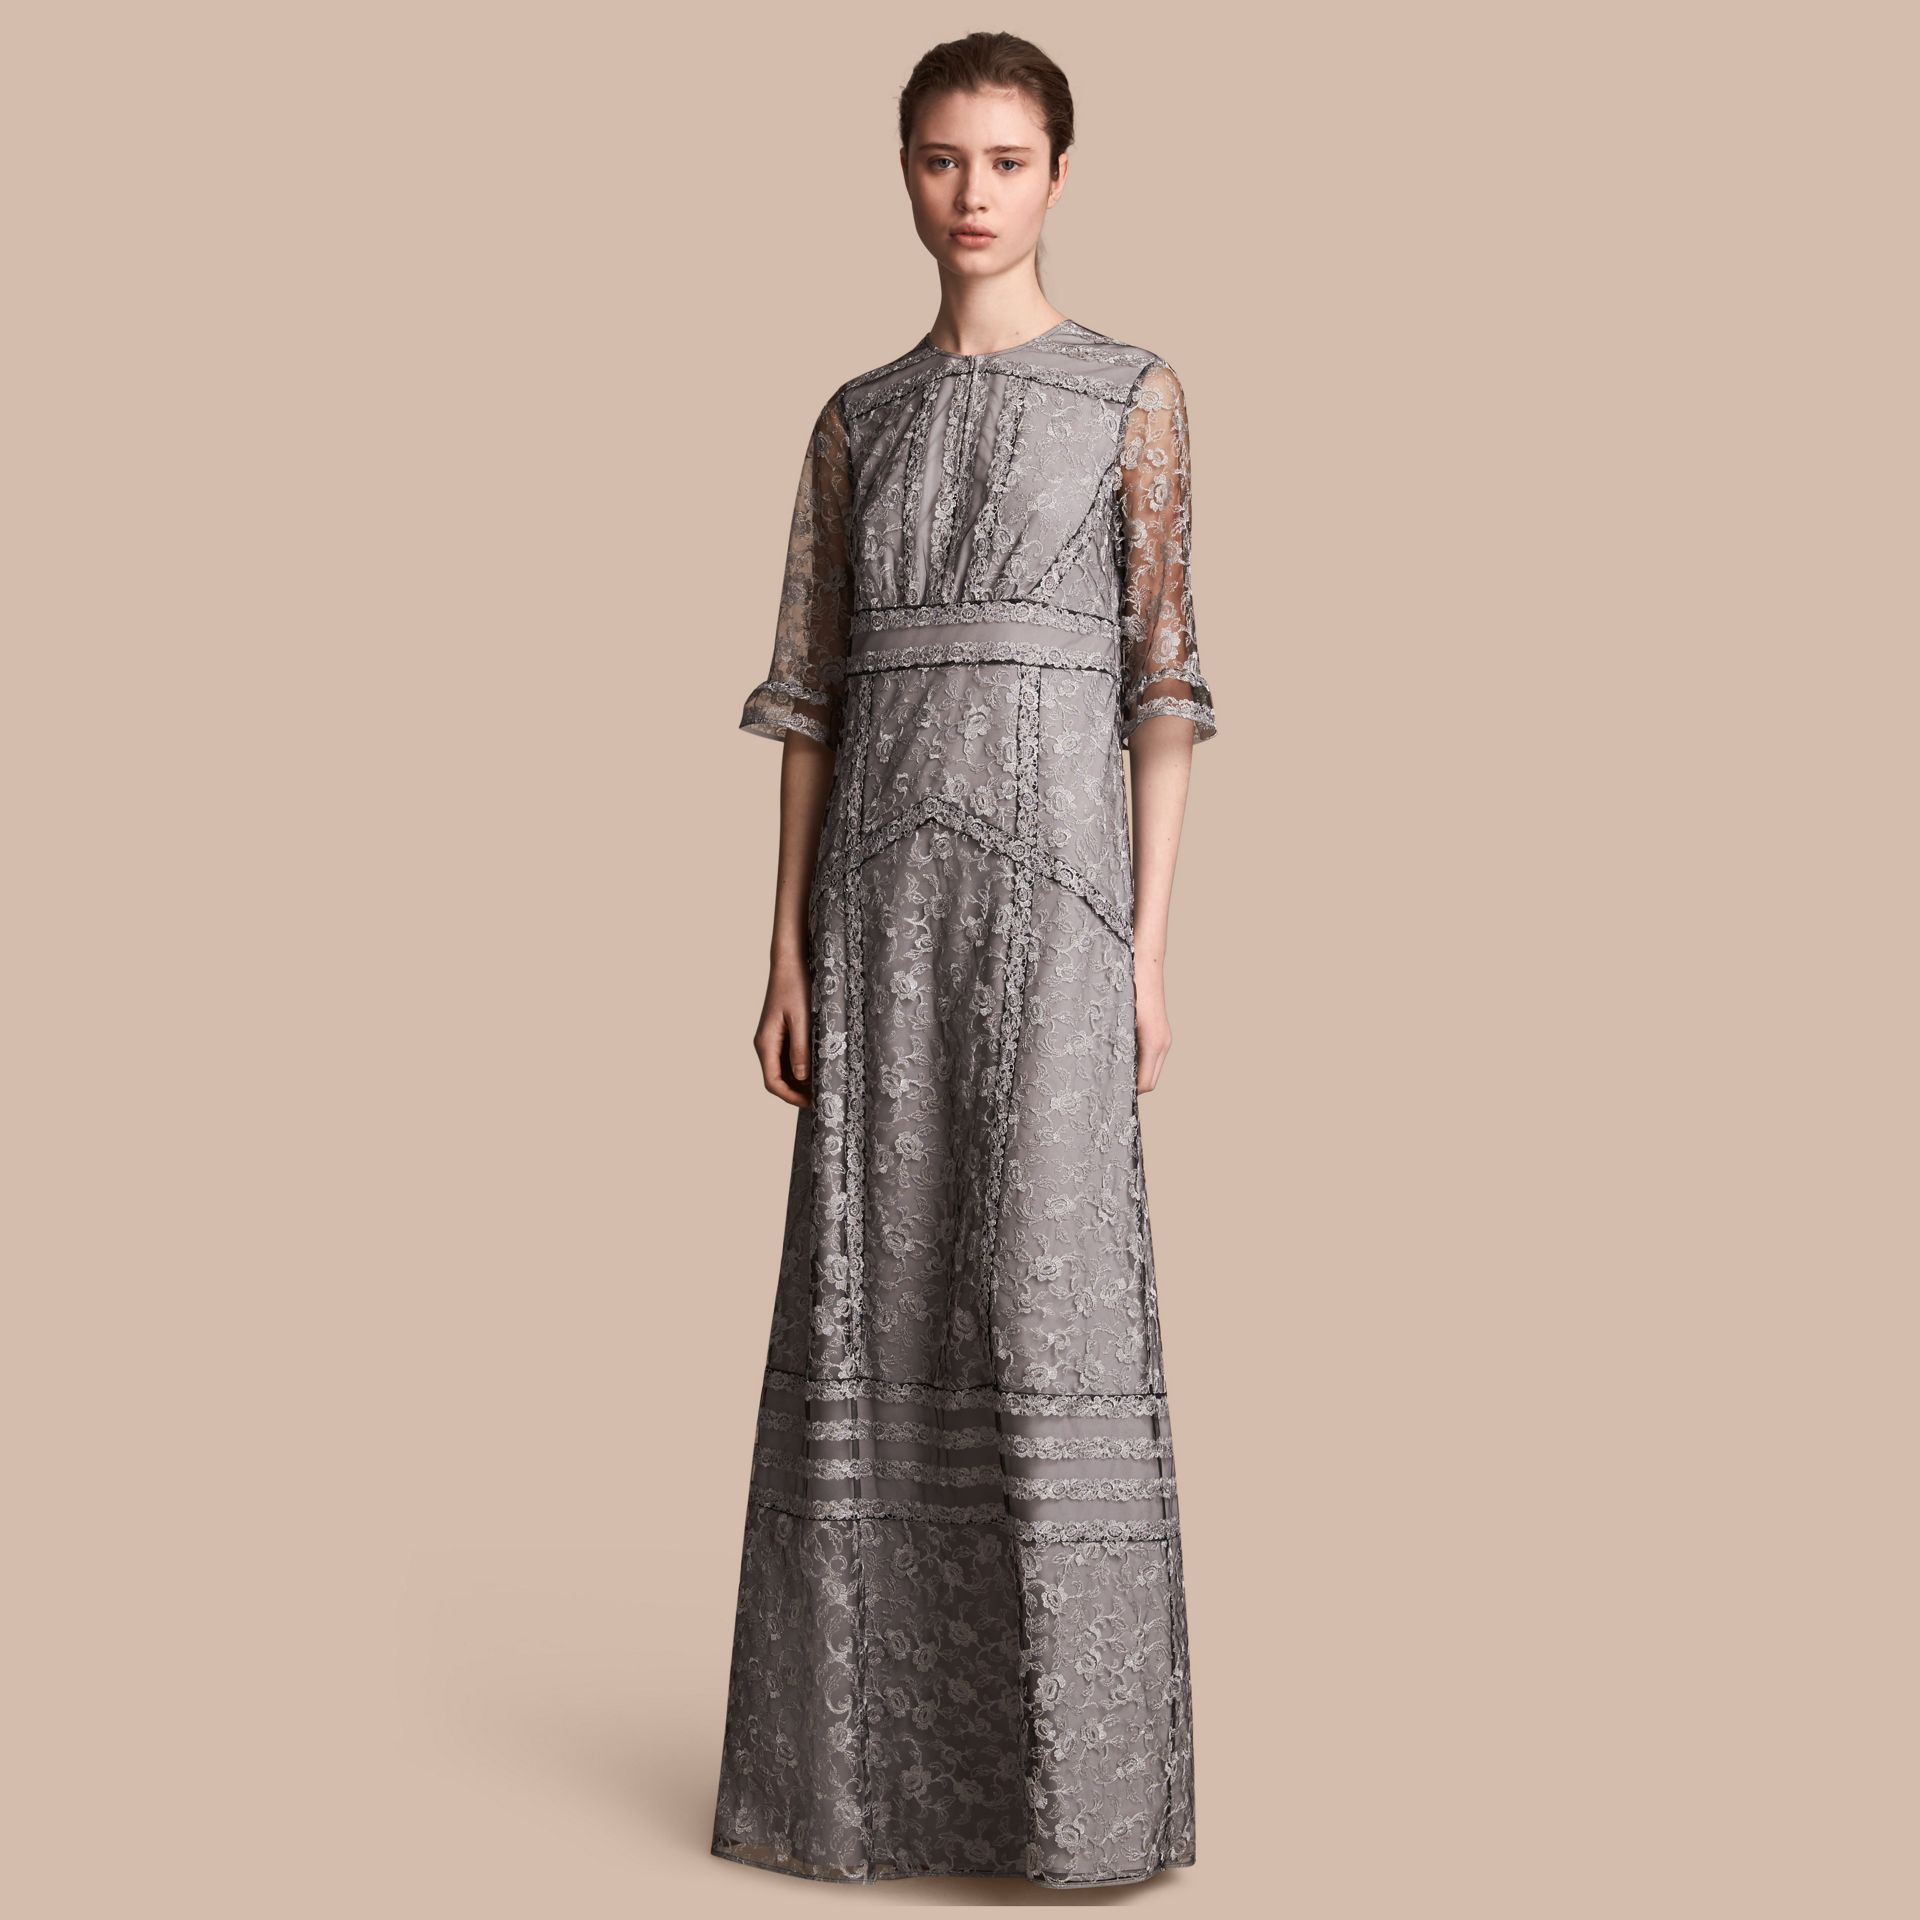 Floral Lace Tulle Dress in Silver - Women | Burberry - gallery image 1